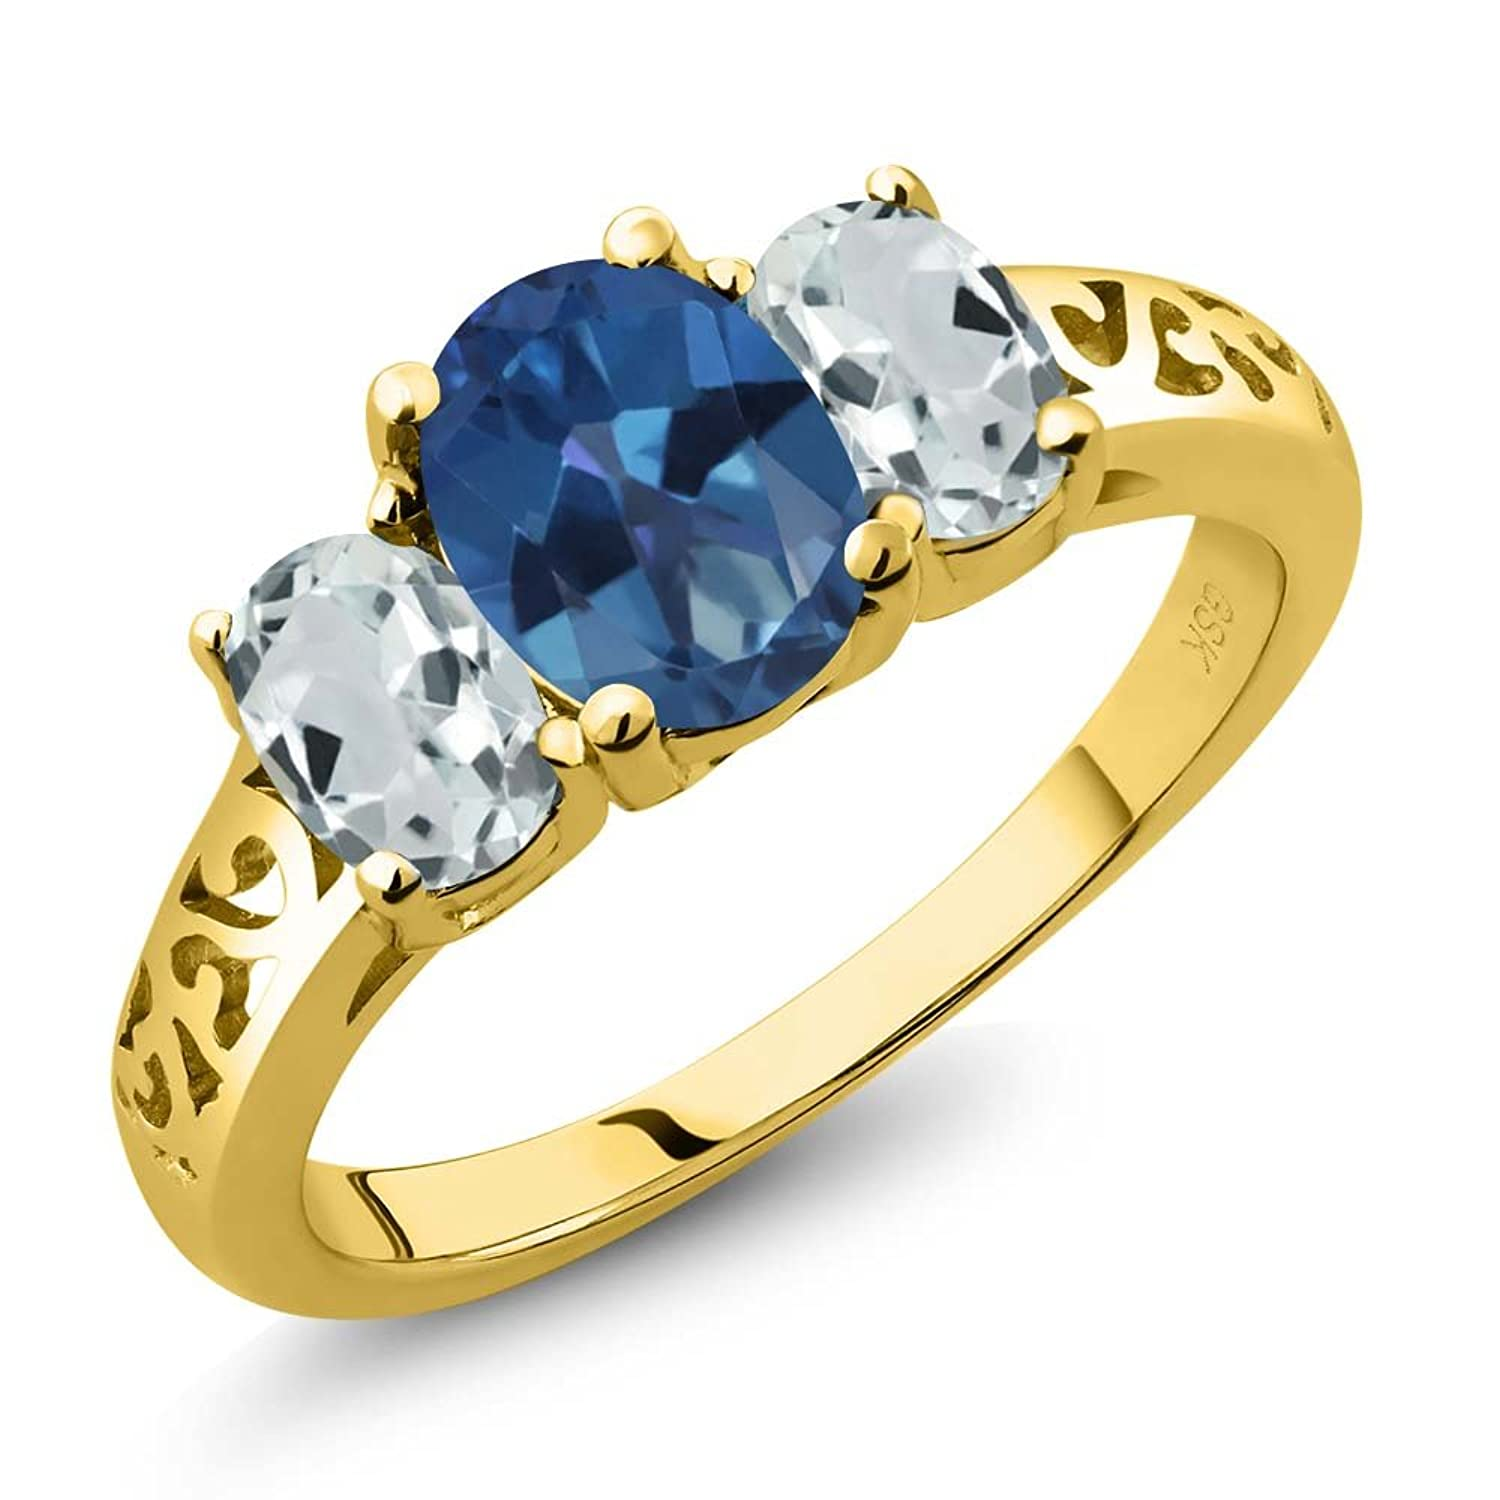 ring for sale jewelry master paolo spinel rings diamond blue stone lagoon three and j royal at id costagli tourmaline